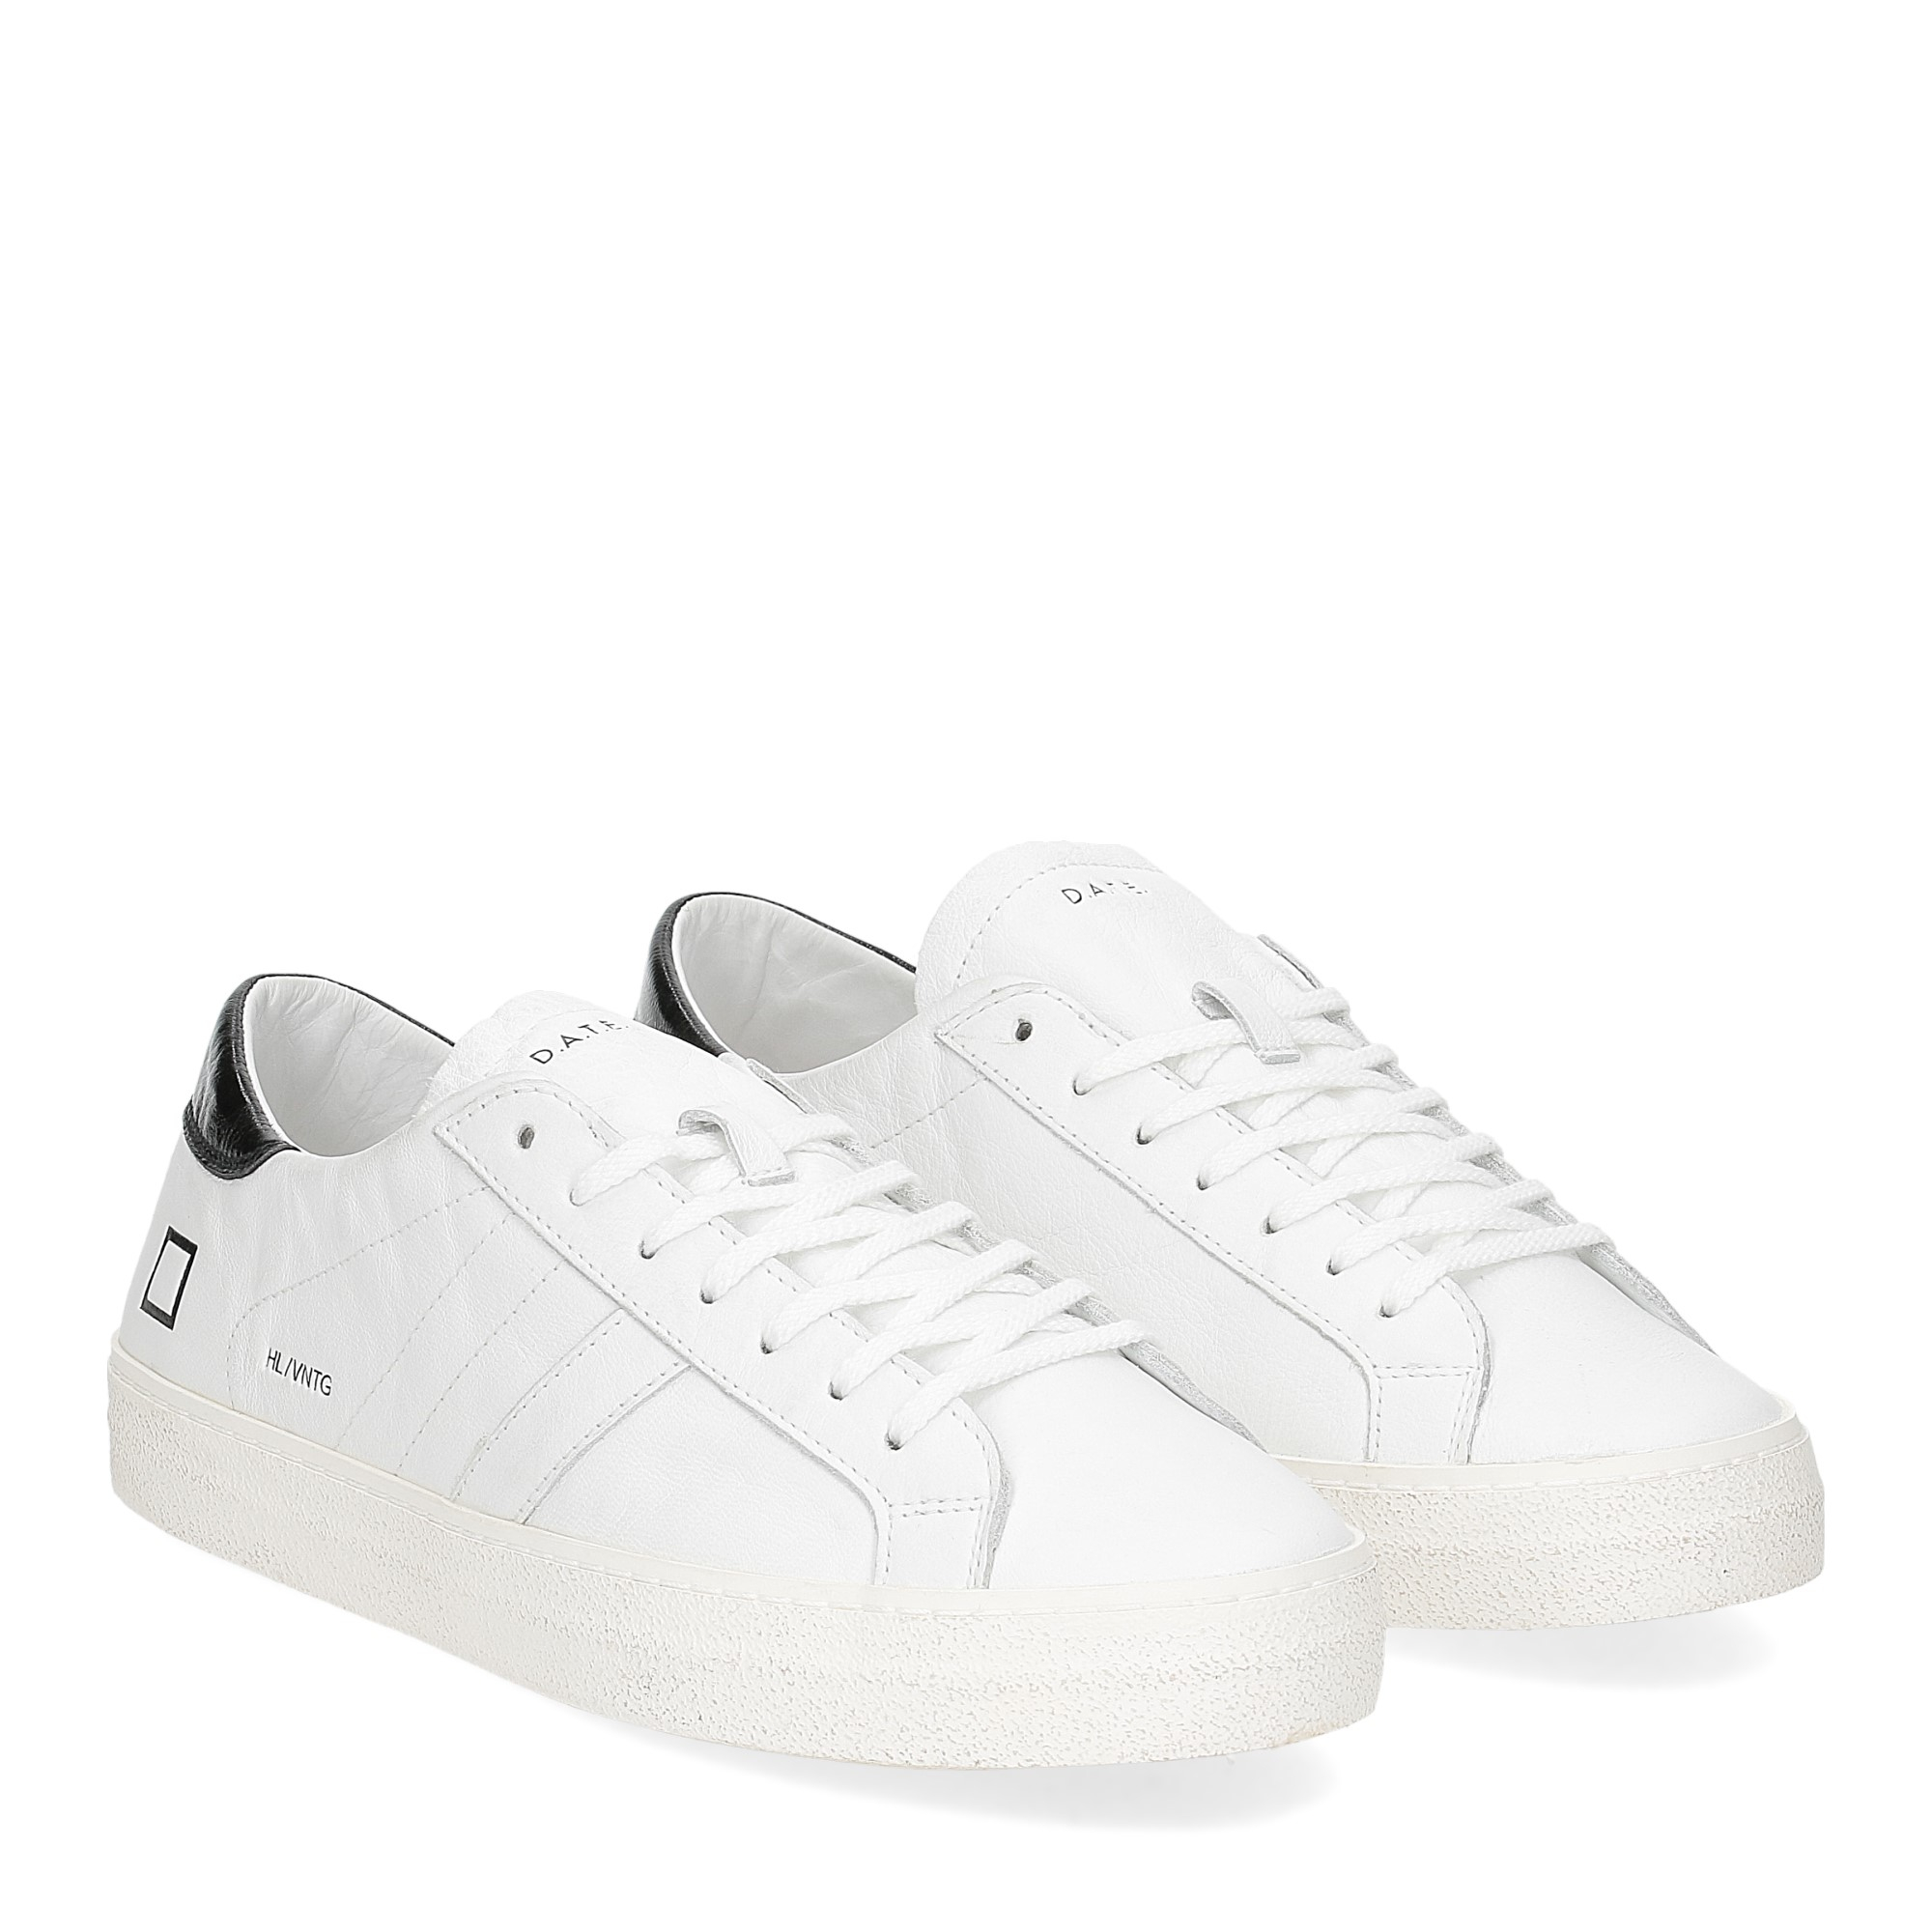 D.A.T.E. Hill low vintage calf white black